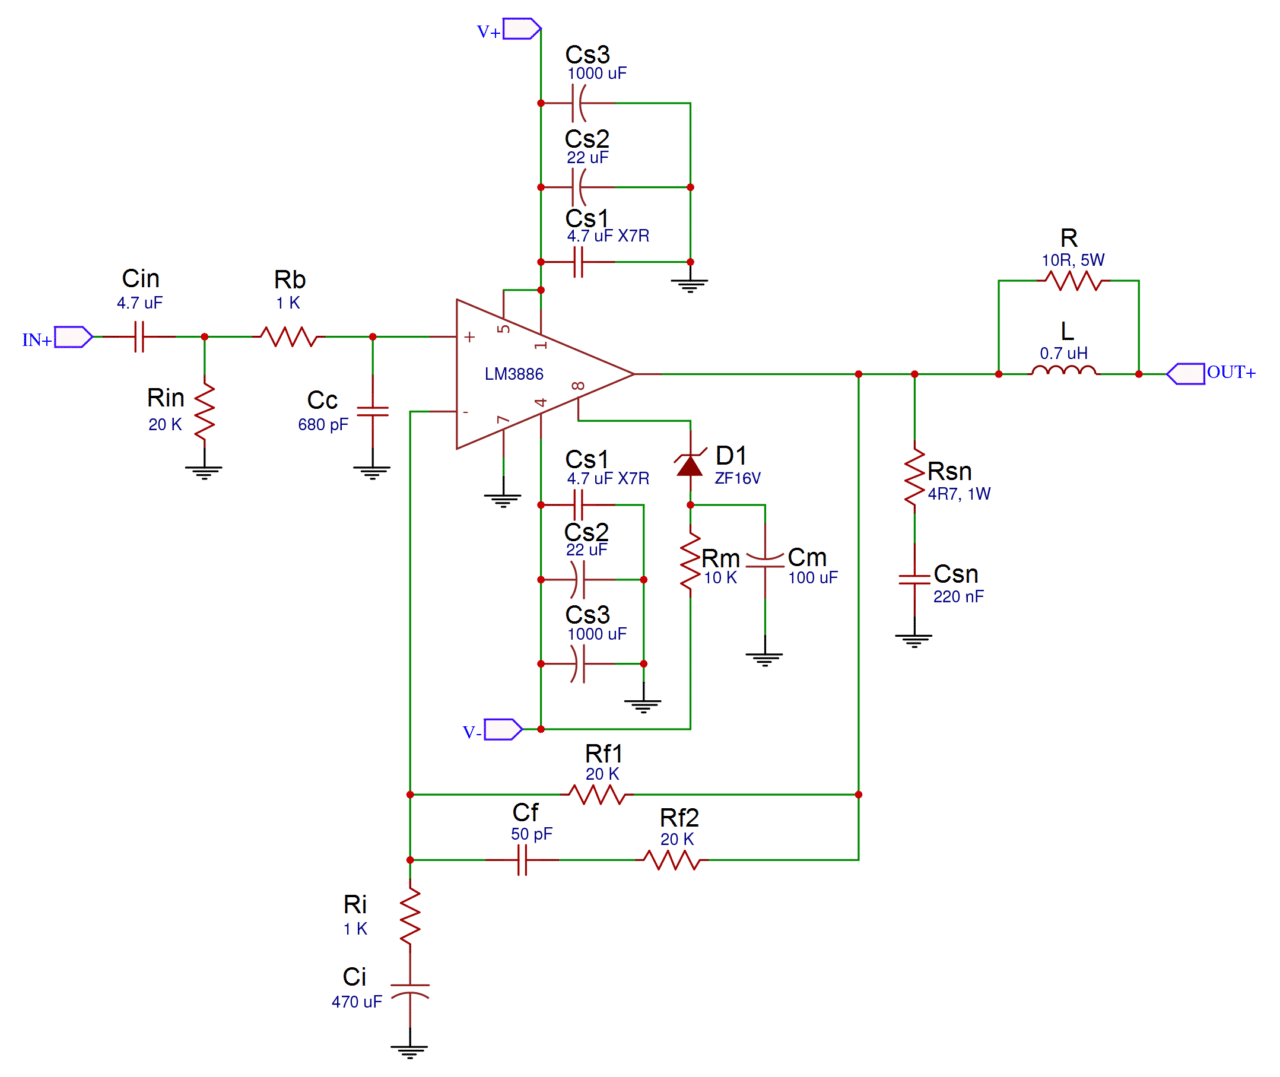 A Complete Guide To Design And Build Hi Fi Lm3886 Amplifier Inexpensive Isolation Transformer Circuit Diagram Electronic Ill Be Using The Schematic Below Its Basically Same As One In Datasheet But With Optional Stability Components Included